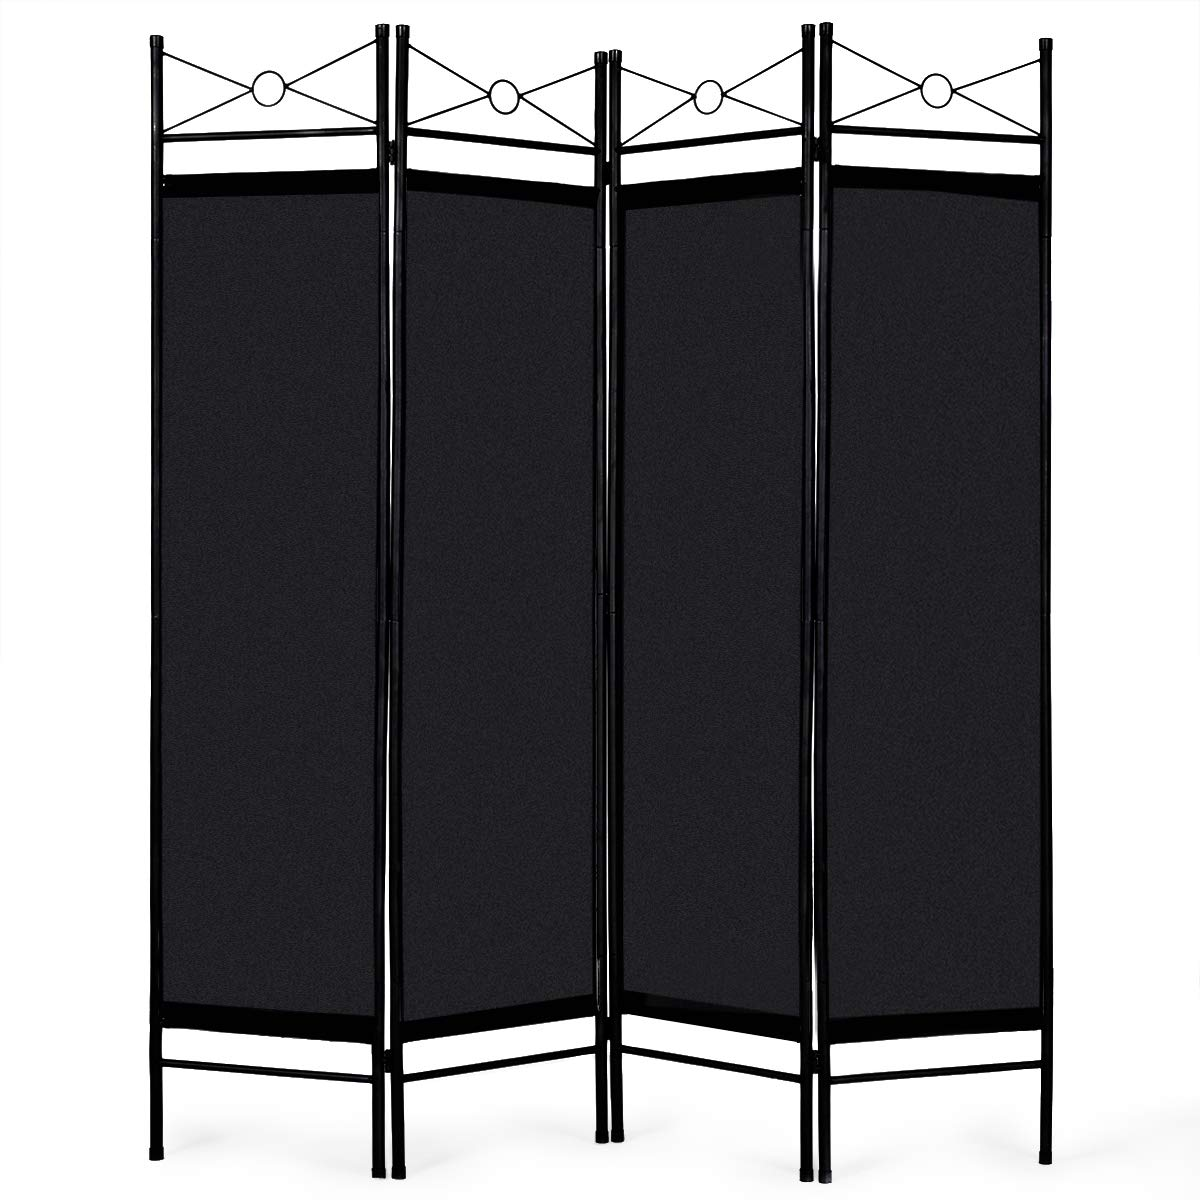 Giantex 4 Panel Room Divider Screens Steel Frame & Fabric Surface Freestanding Room Dividers and Folding Privacy Screens Home Office, Black